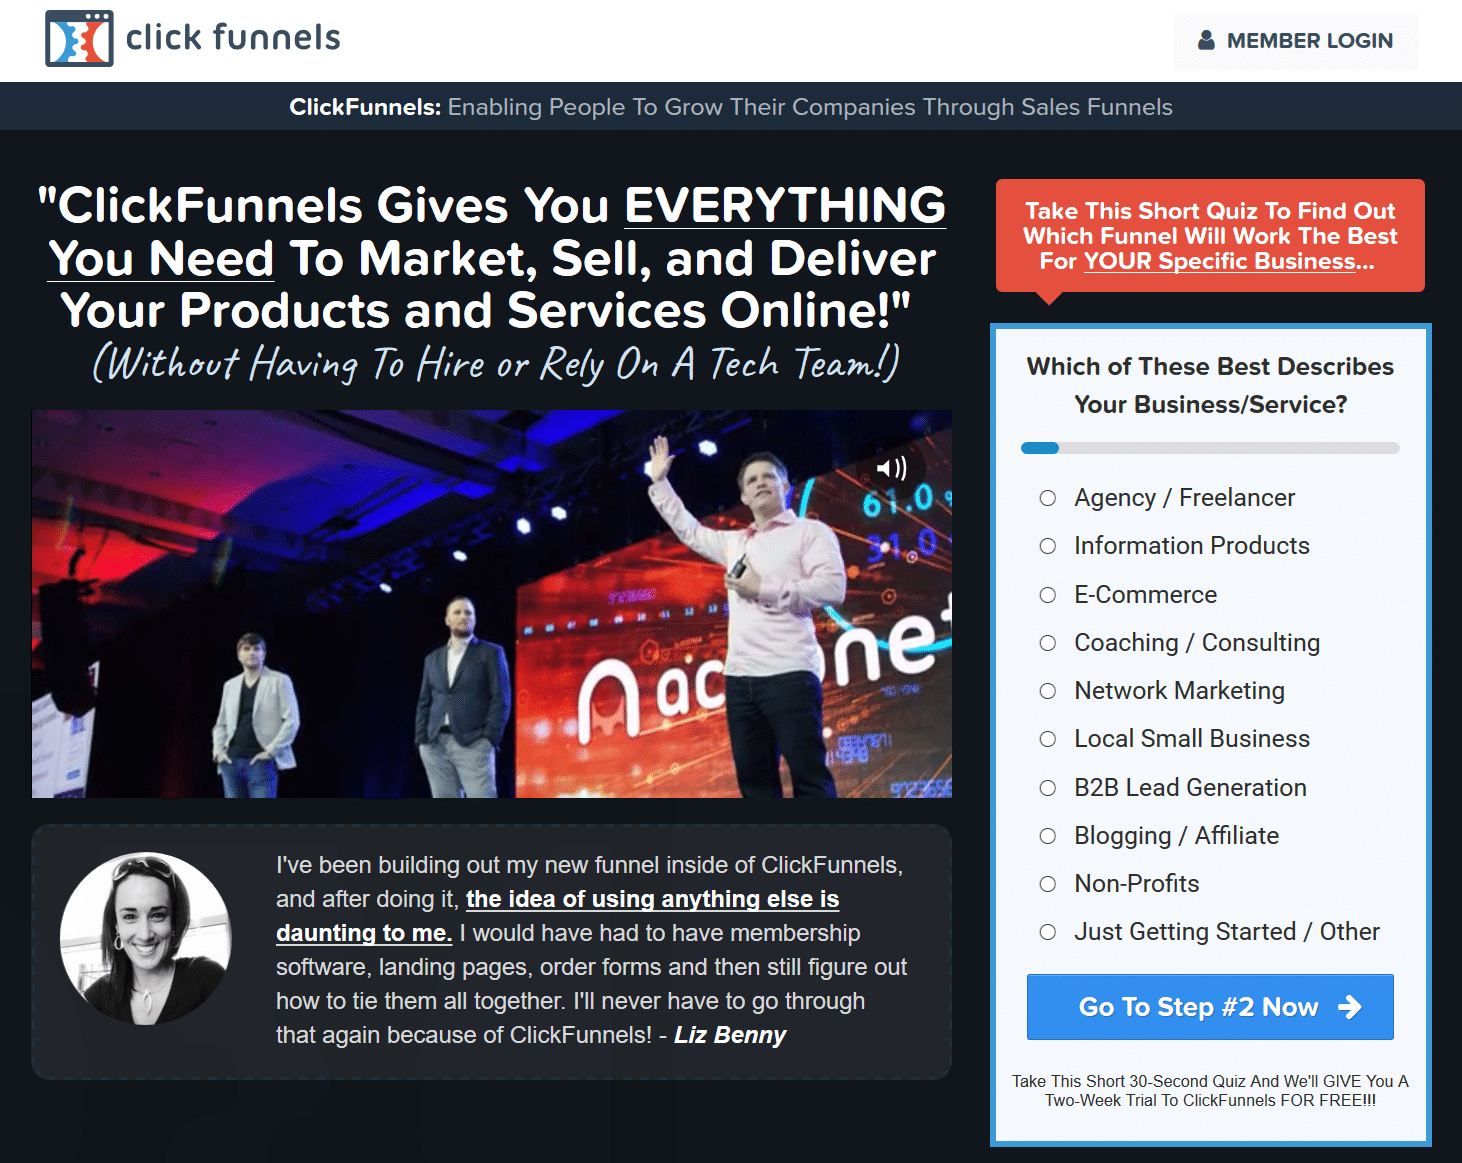 How To Turn Modal Block Off Clickfunnels